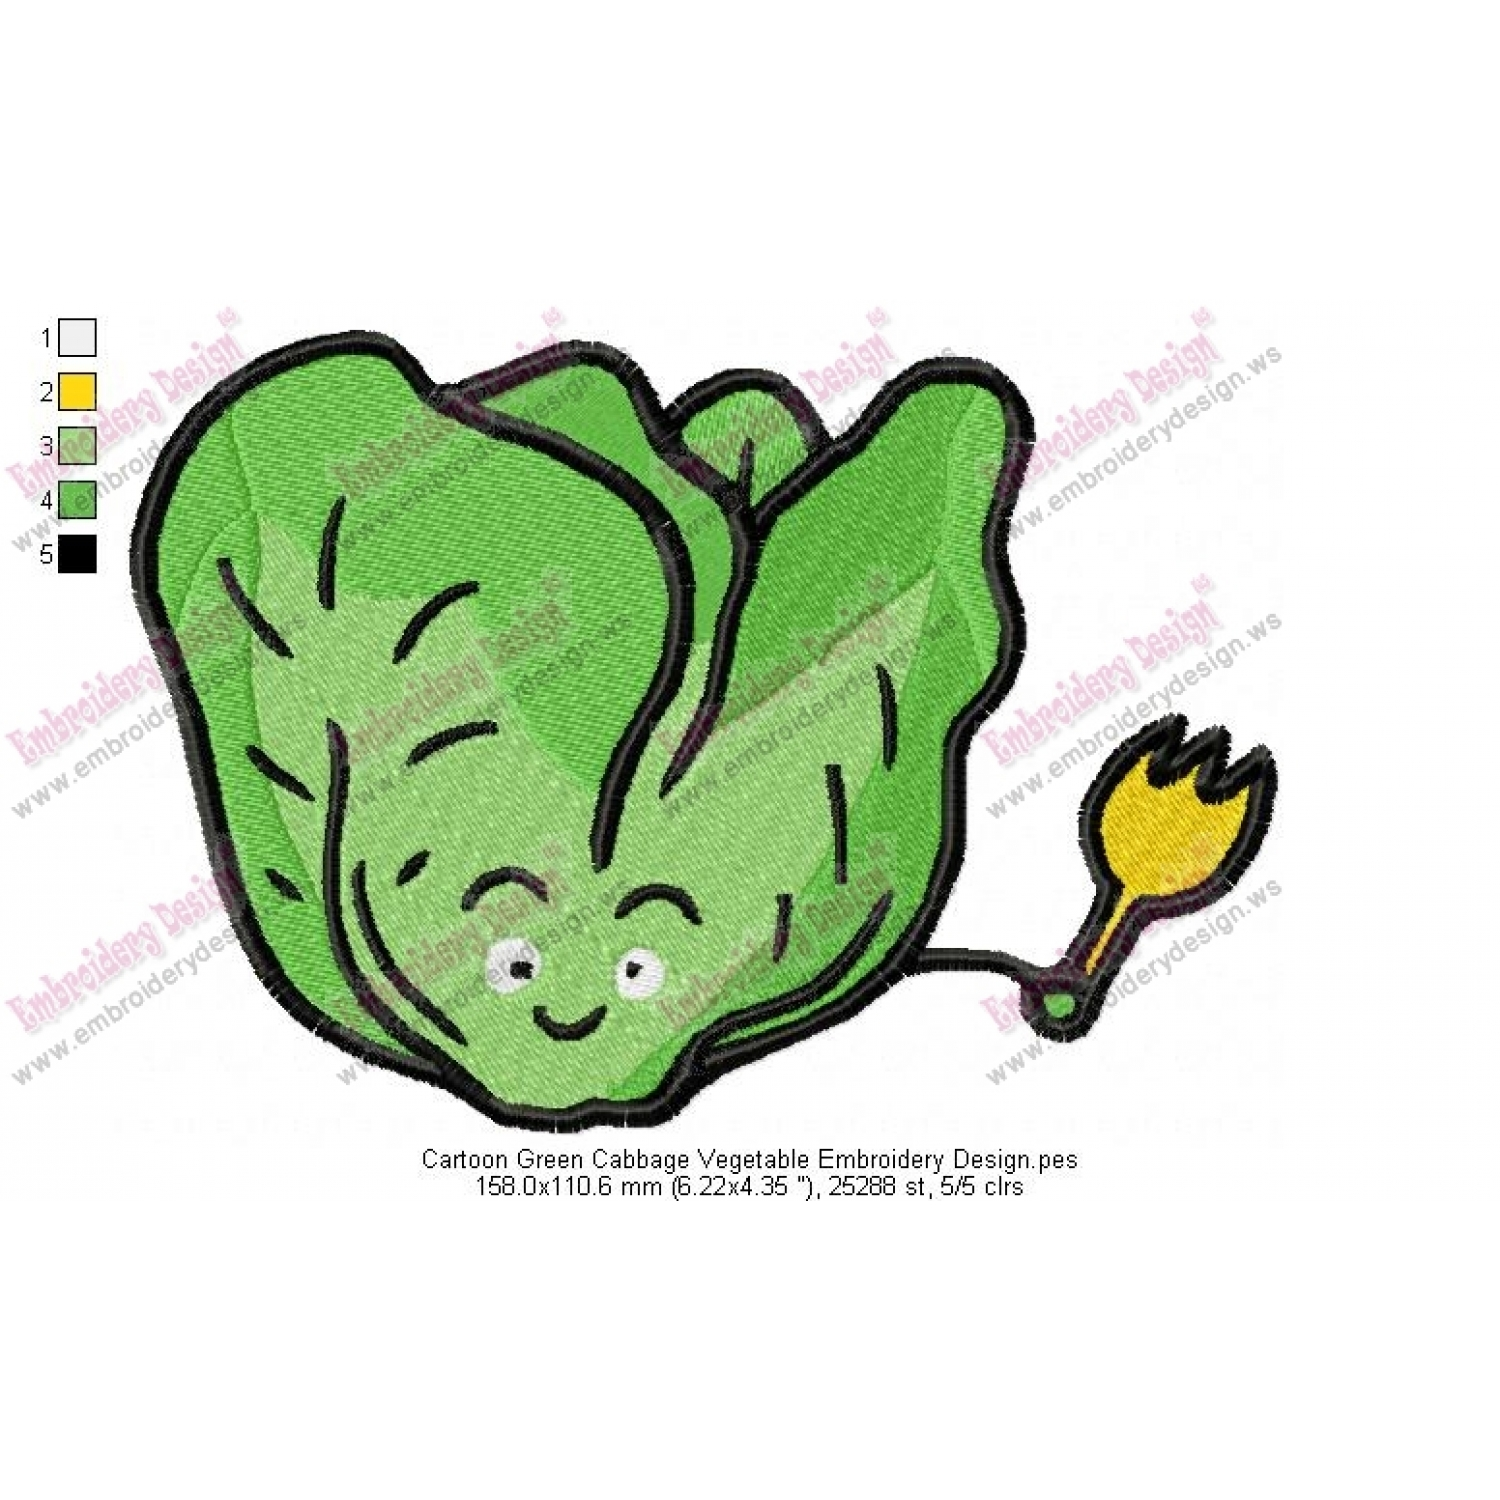 Vegetables Embroidery Designs